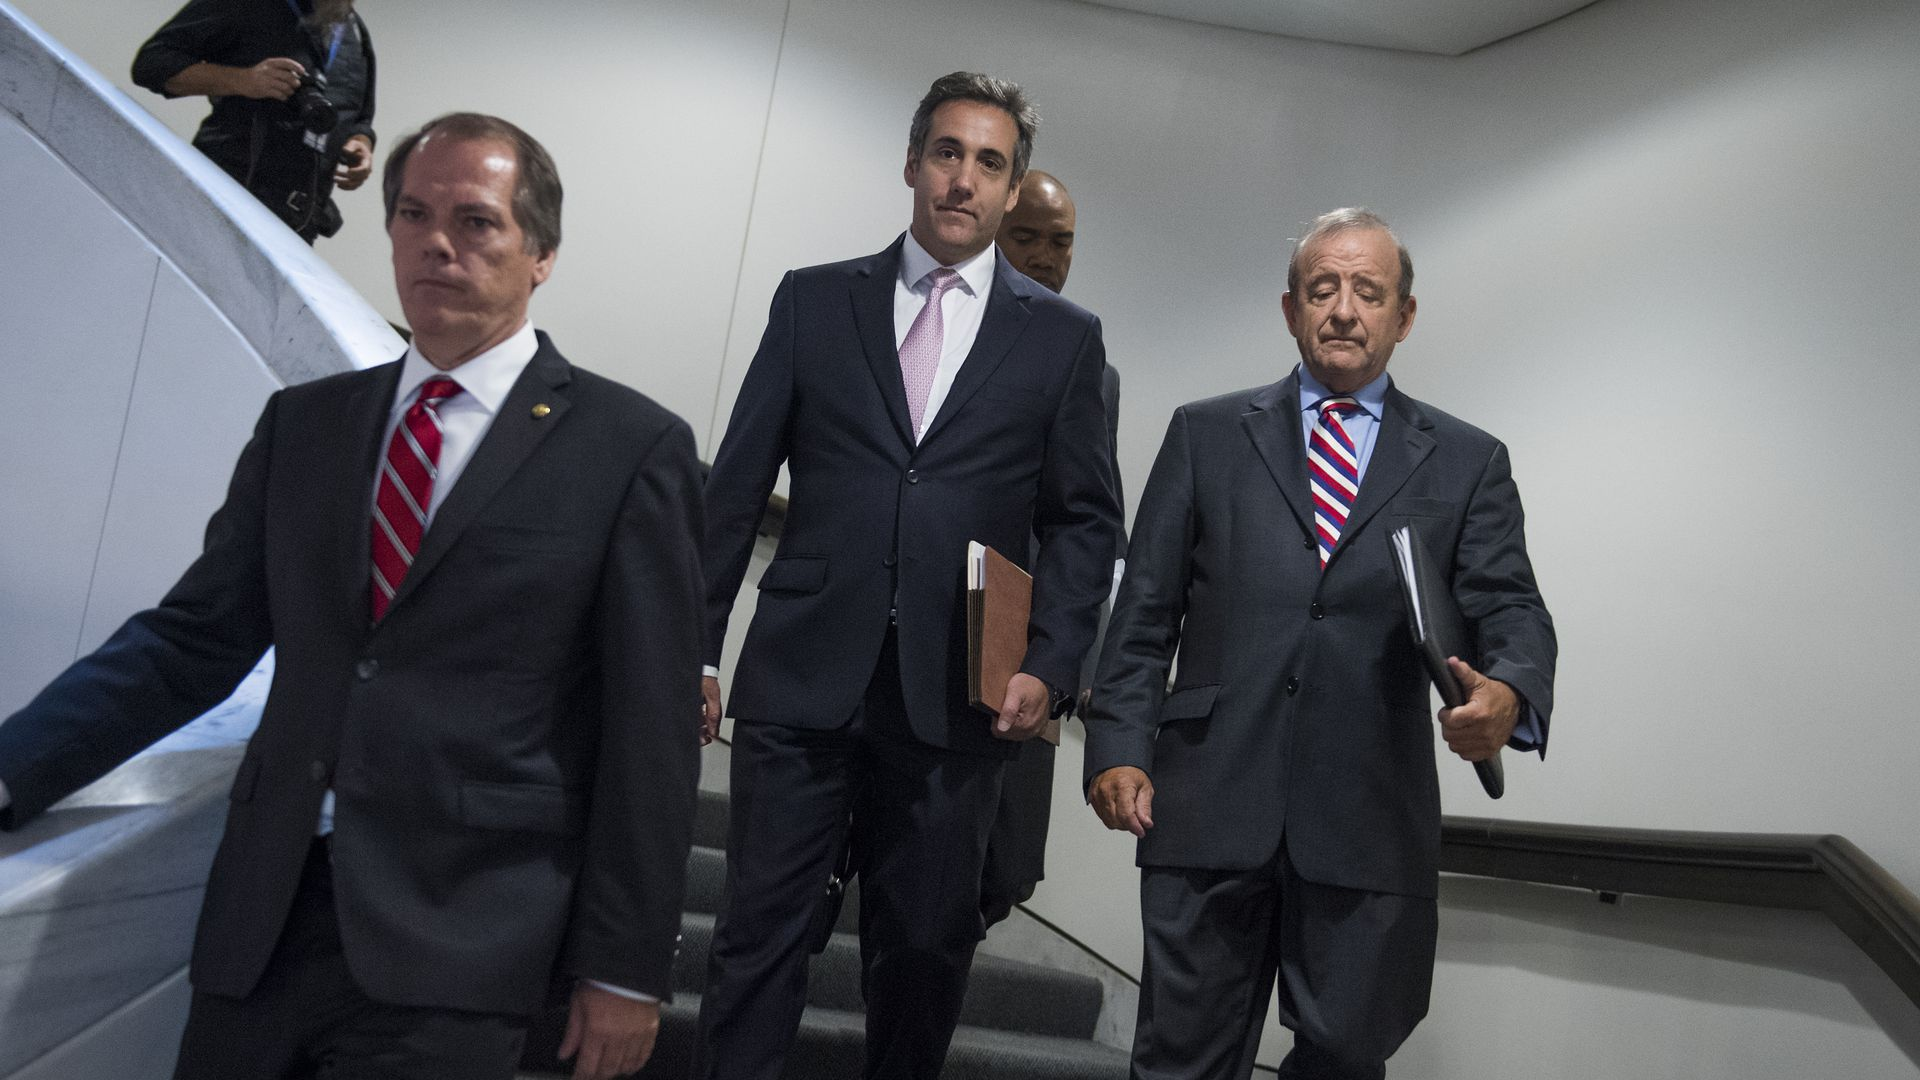 Michael Cohen, center, following his meeting with the Senate Intelligence Committee. Photo: By Tom Williams / CQ Roll Call